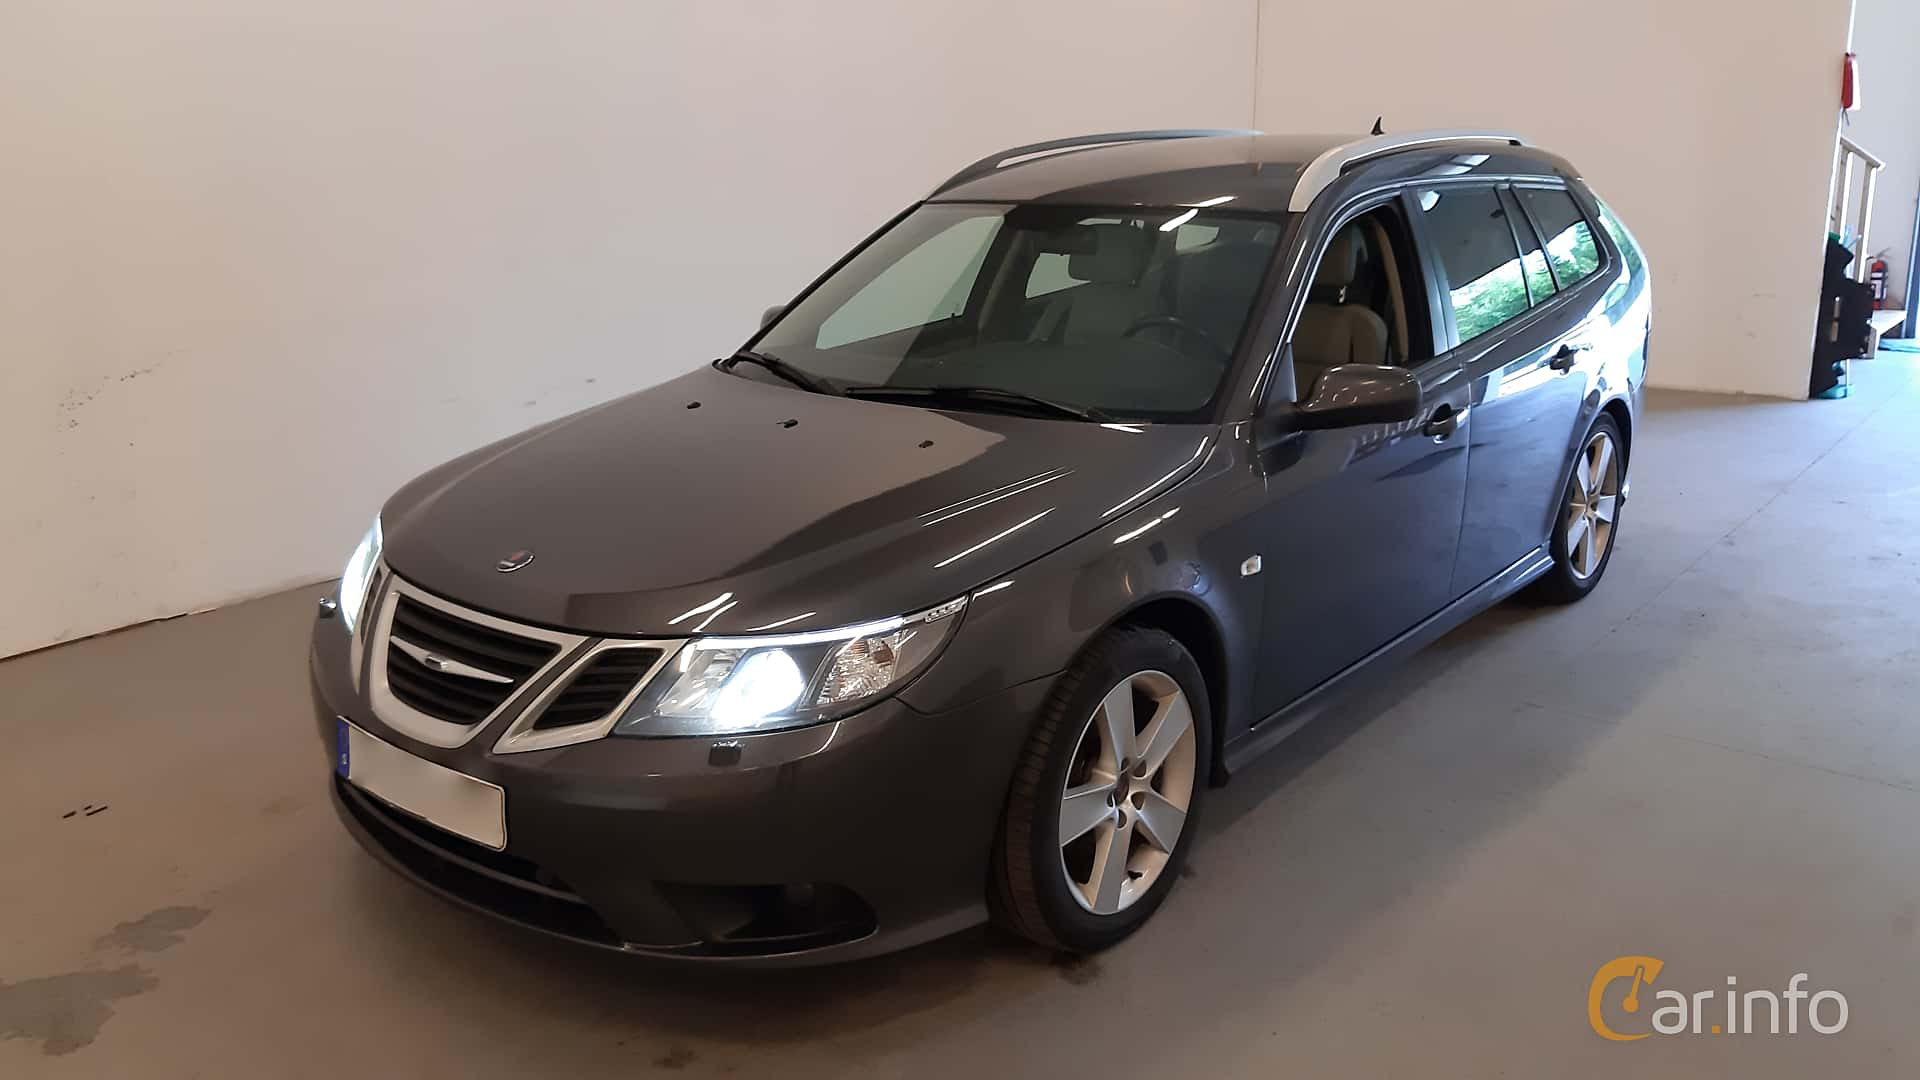 Front/Side  of Saab 9-3 SportCombi 2.0t BioPower  Manual, 175ps, 2009